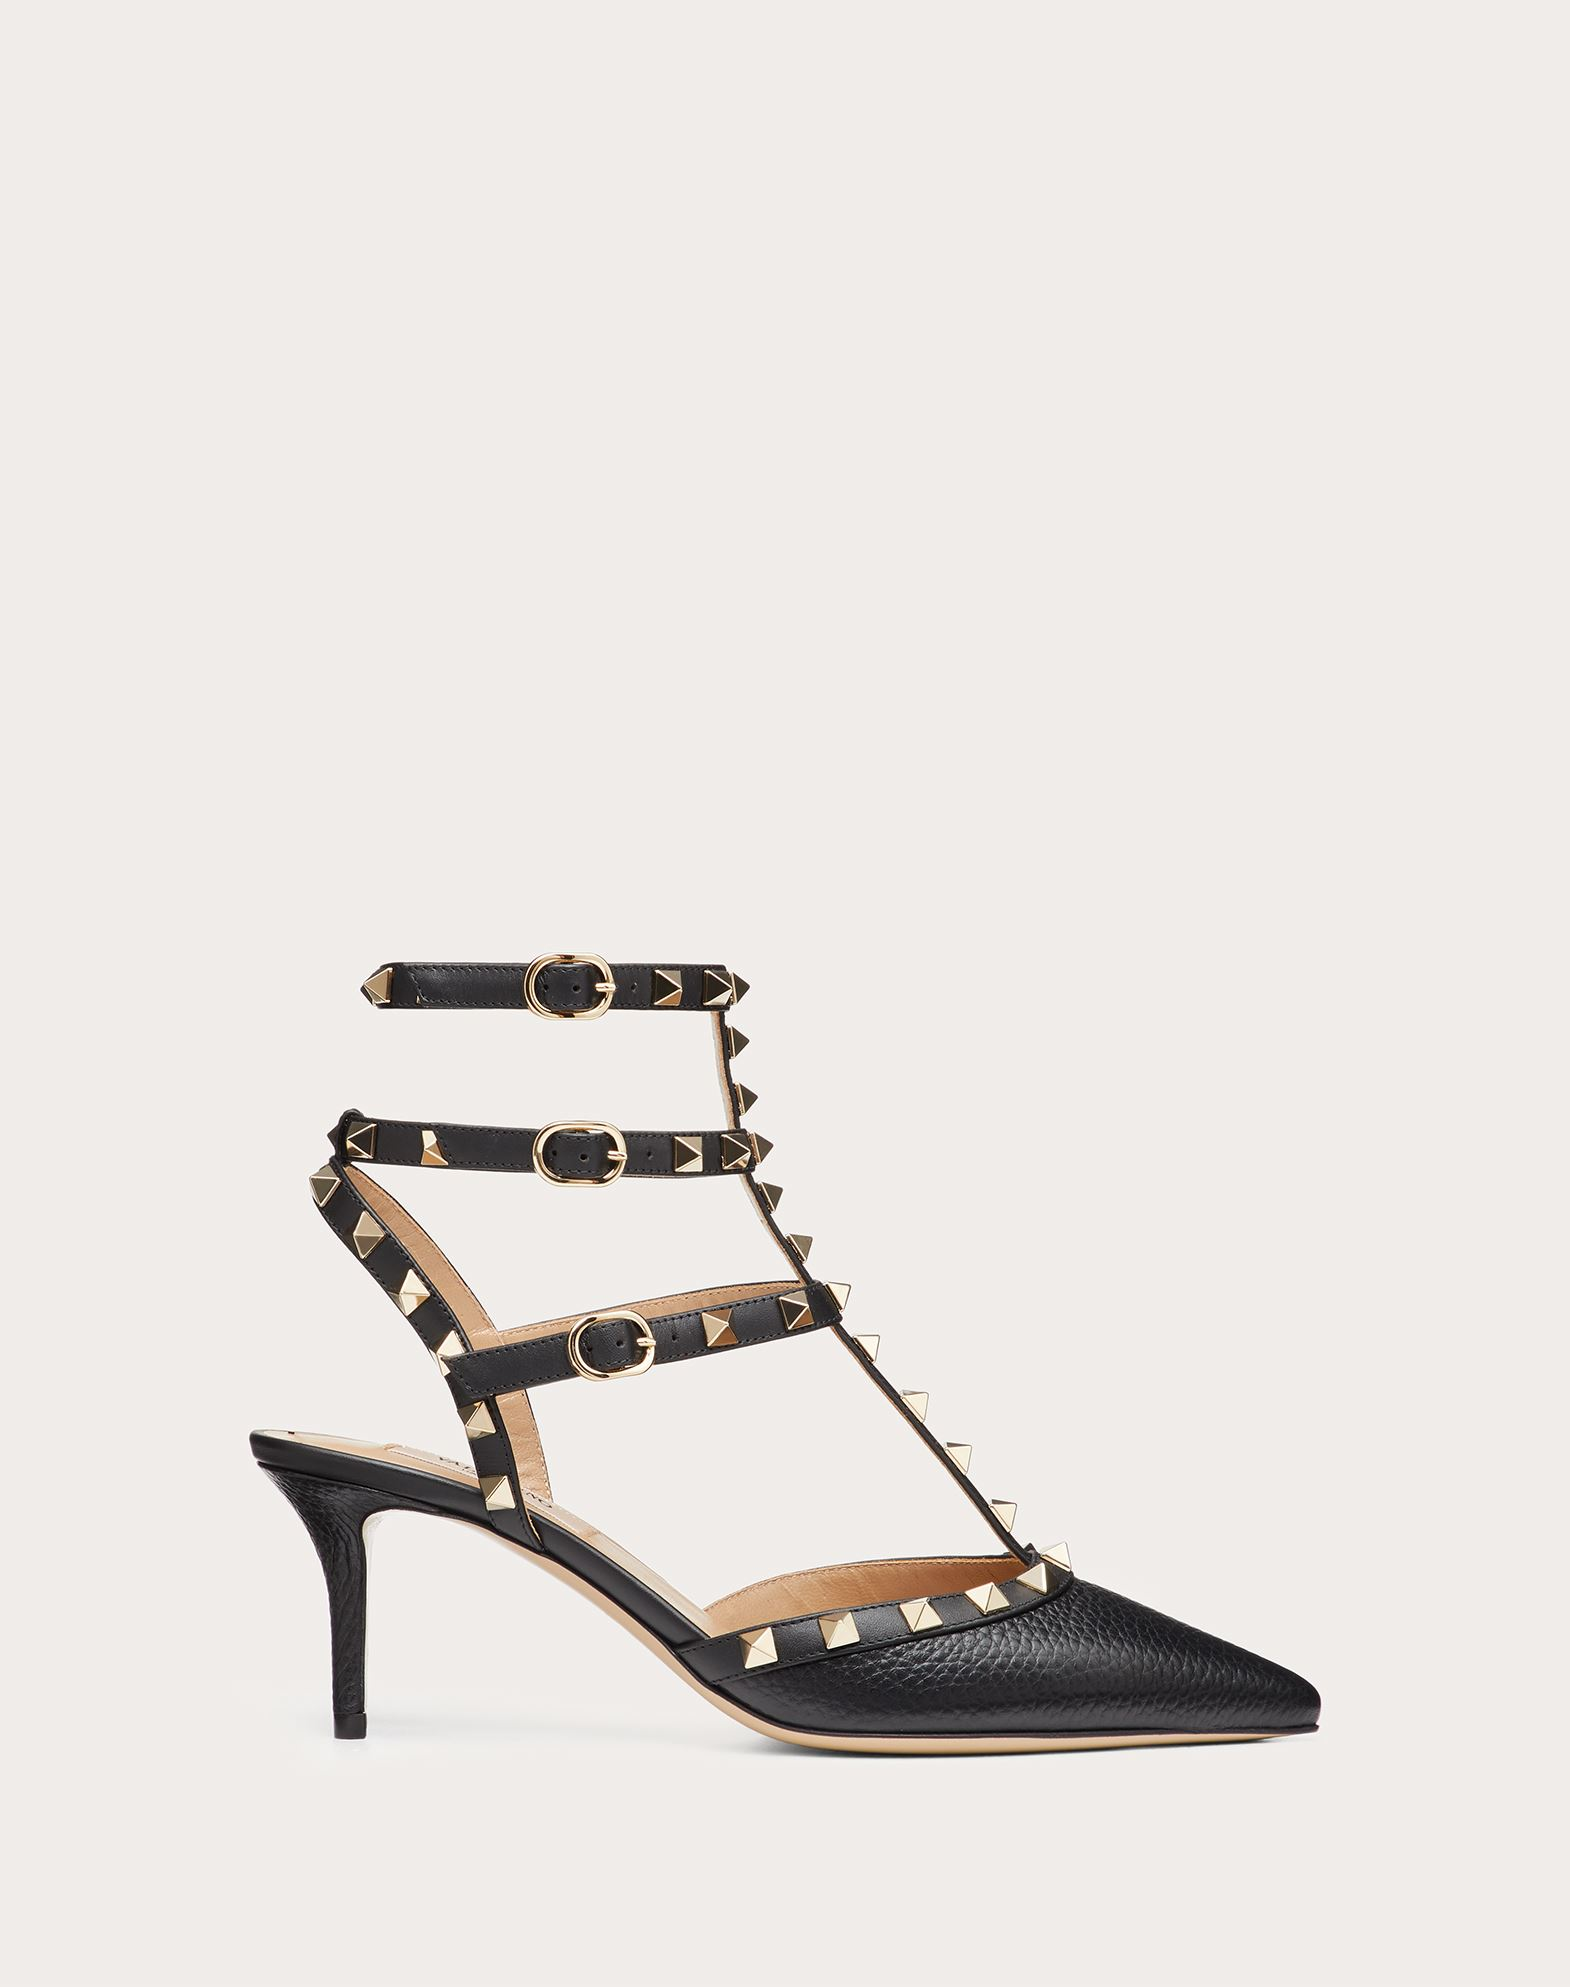 Rockstud Grainy Calfskin Ankle Strap Pump 65 mm